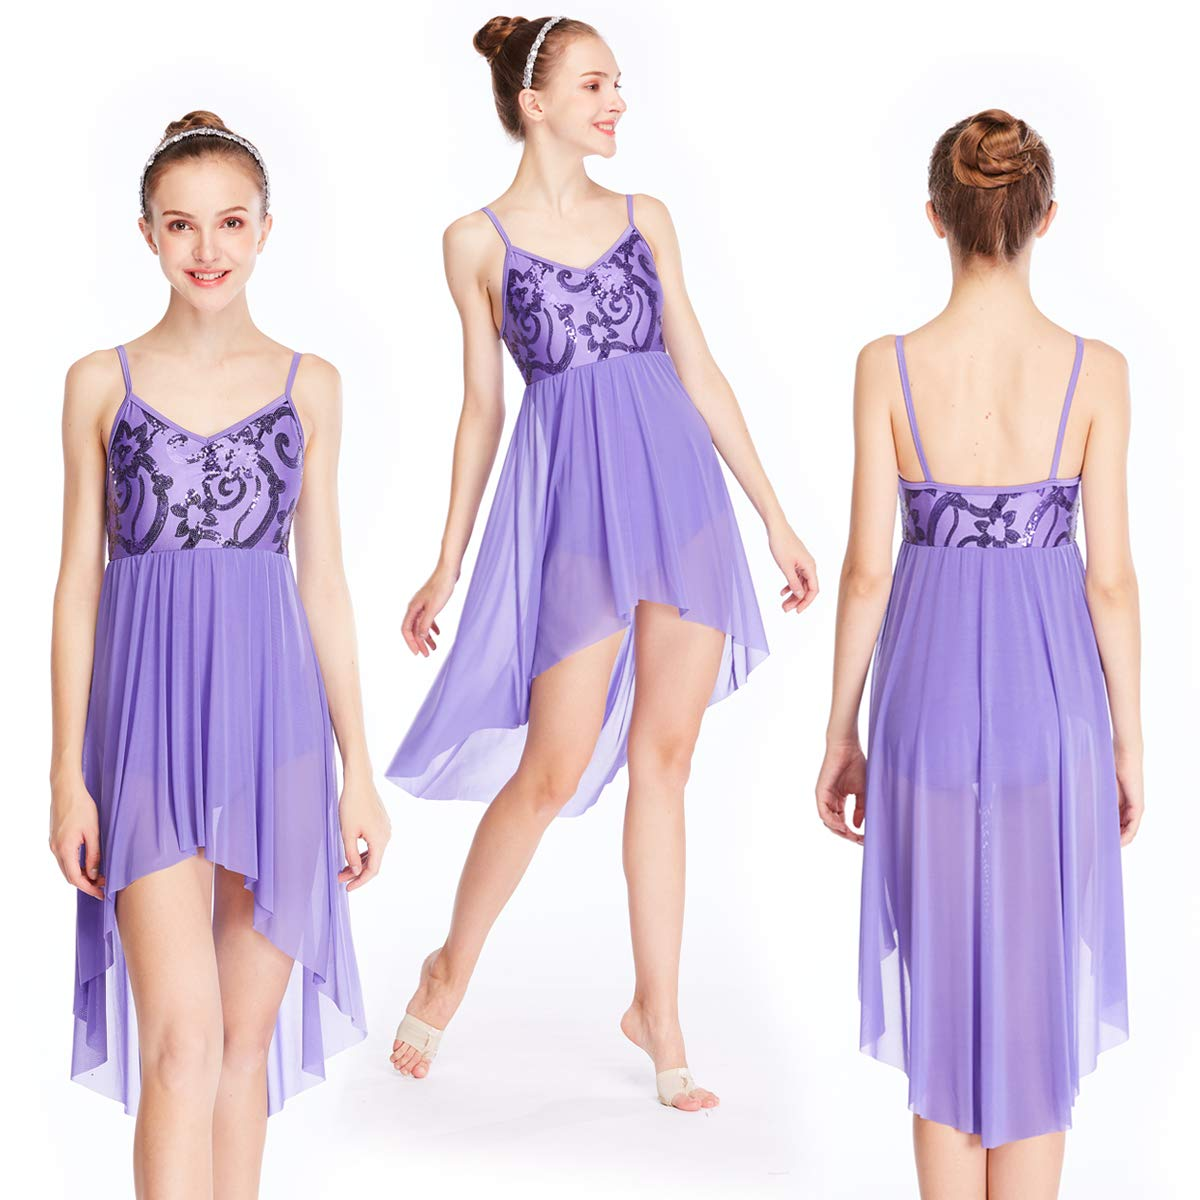 MiDee Lyrical Dance Dress Contemporary Costumes Floral Sequins Camisole High-Low Dresses